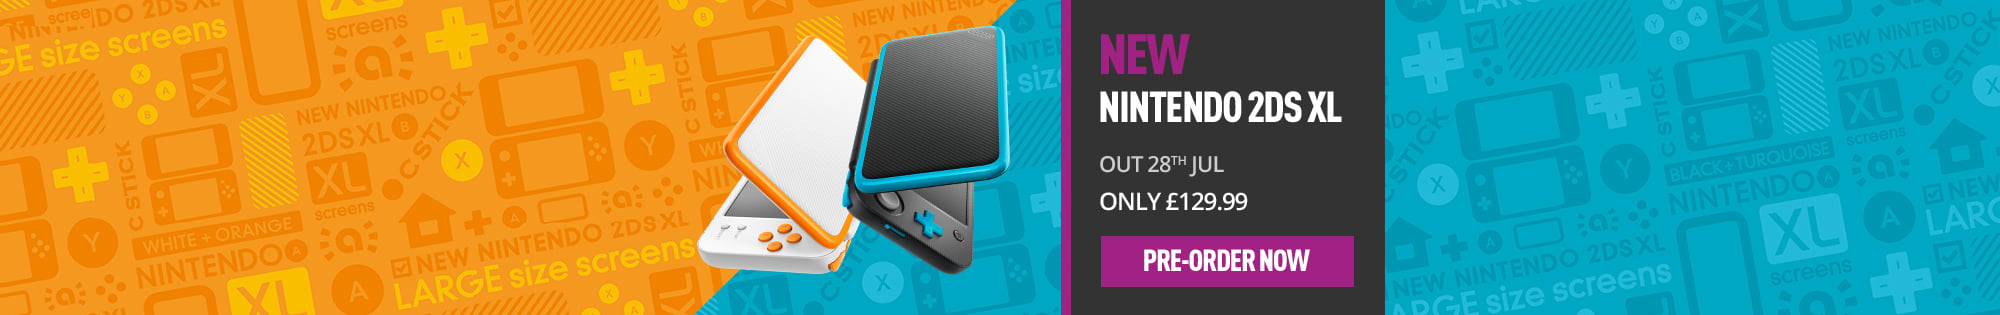 New Nintendo 2DS - Pre-Order Now at GAME.co.uk